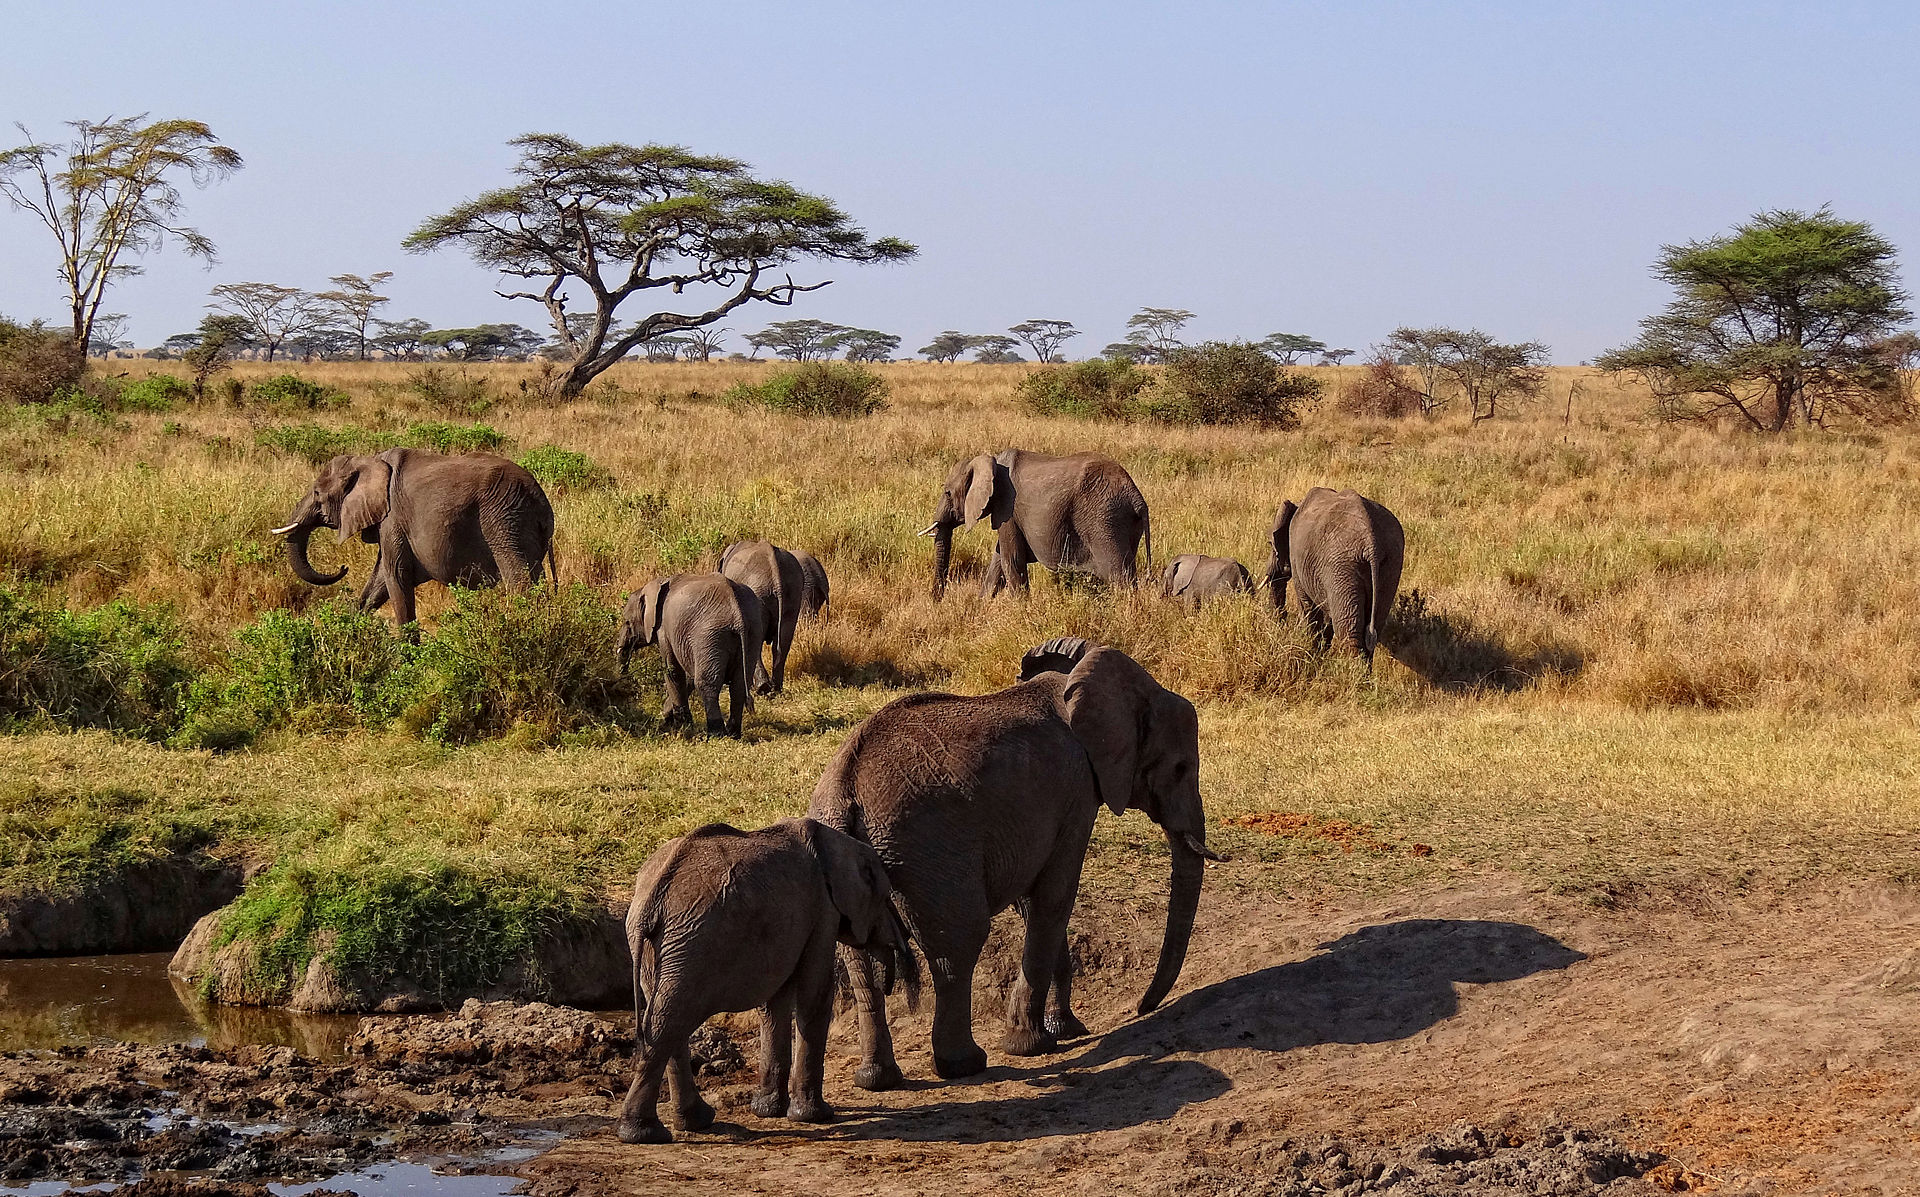 Elephant Herd In The Serengeti National Park: See elephants in the wild